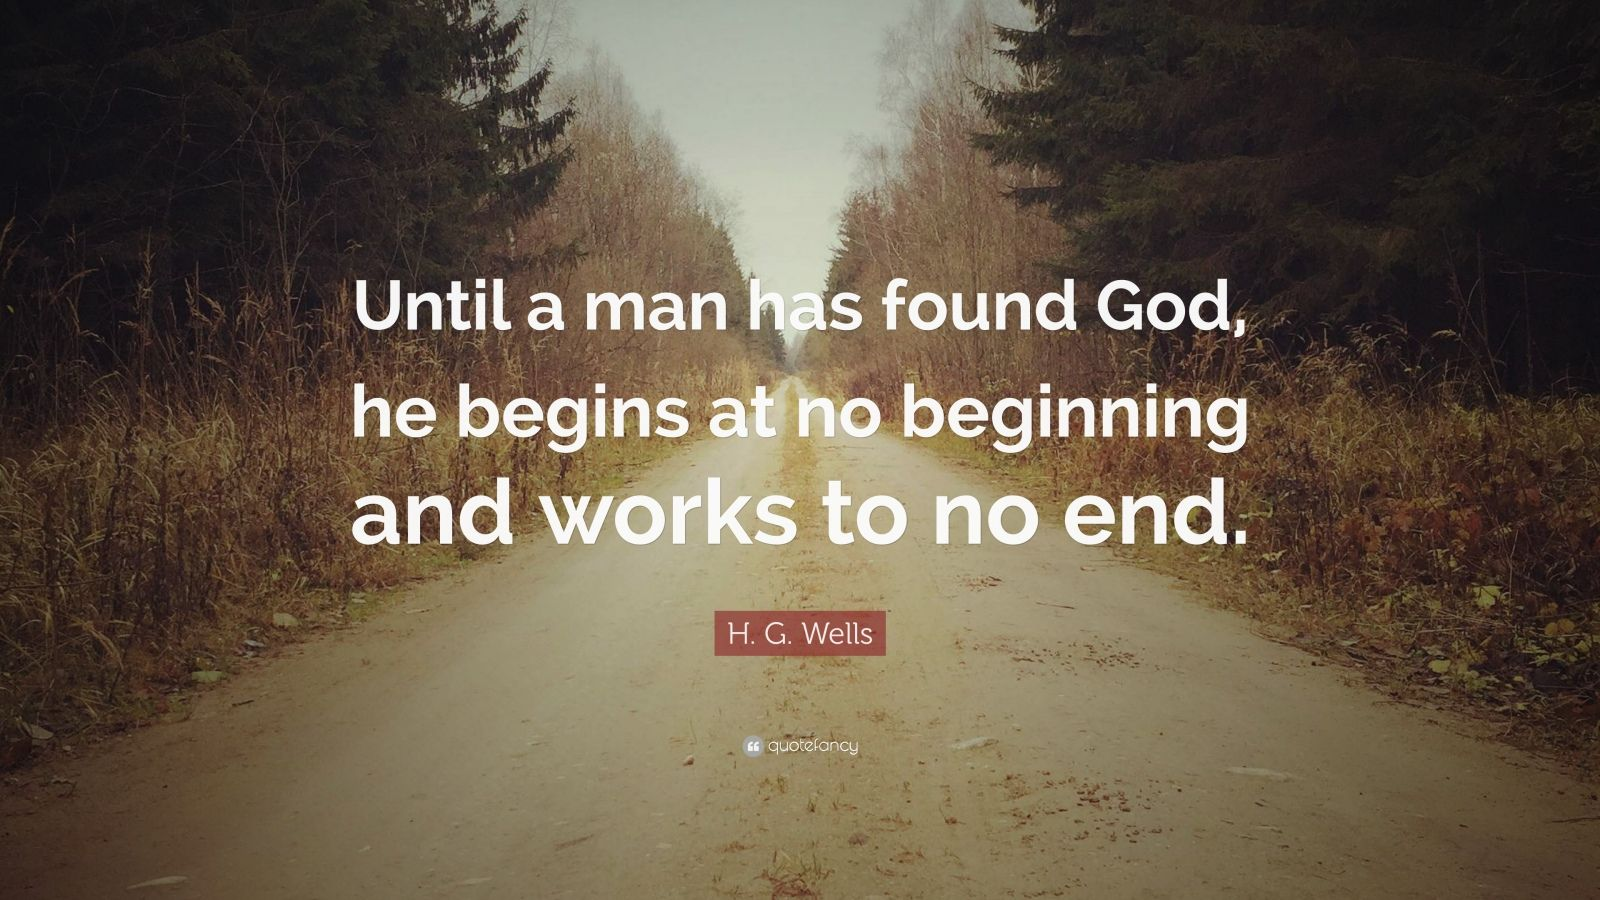 """H. G. Wells Quote: """"Until a man has found God, he begins at no beginning and works to no end."""""""